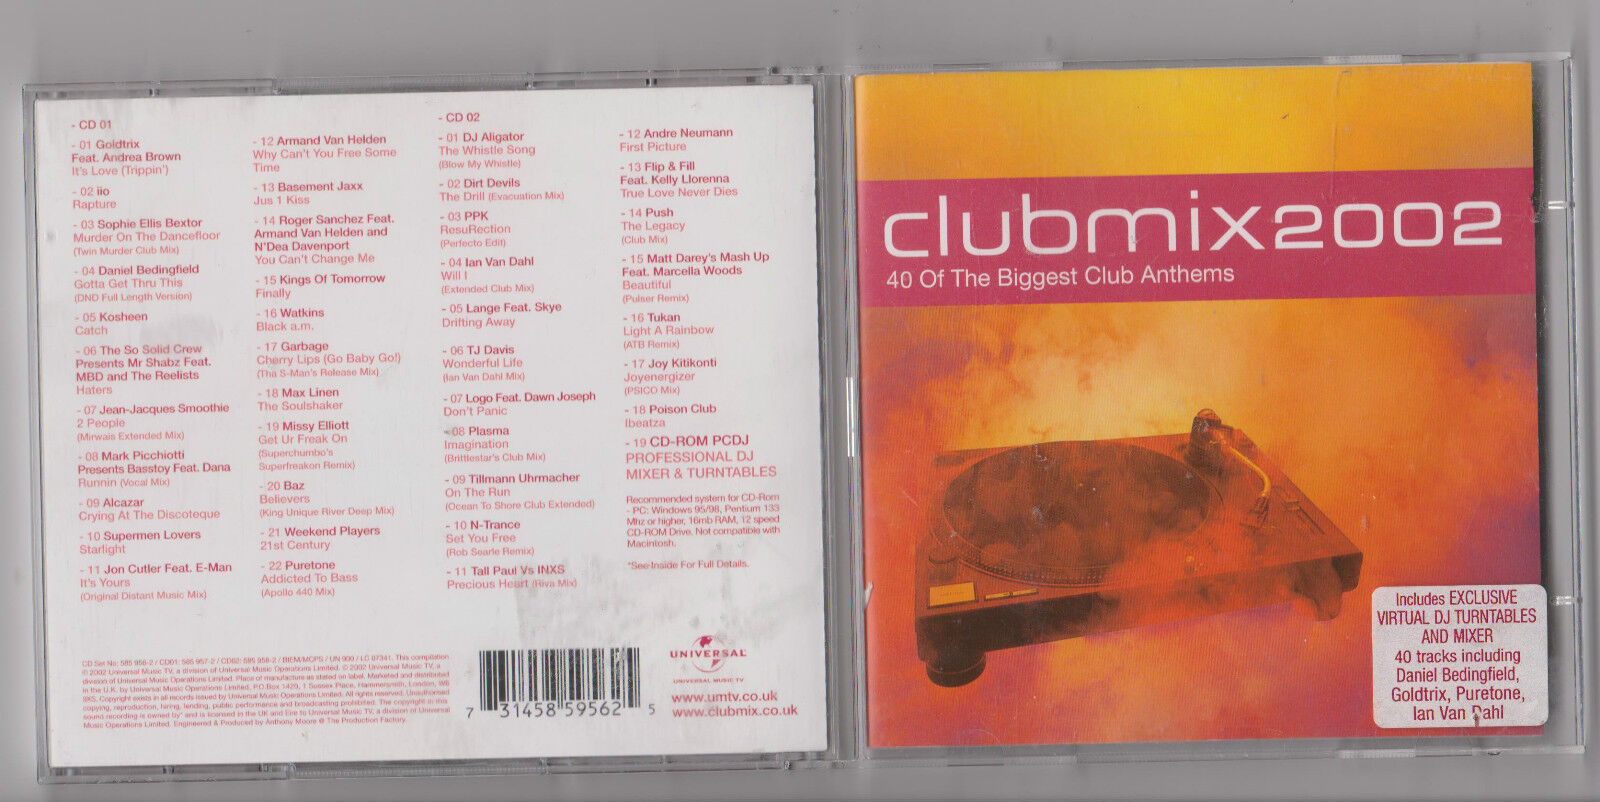 Music CD Club Mix 2002 - 40 of The Biggest Club Anthems